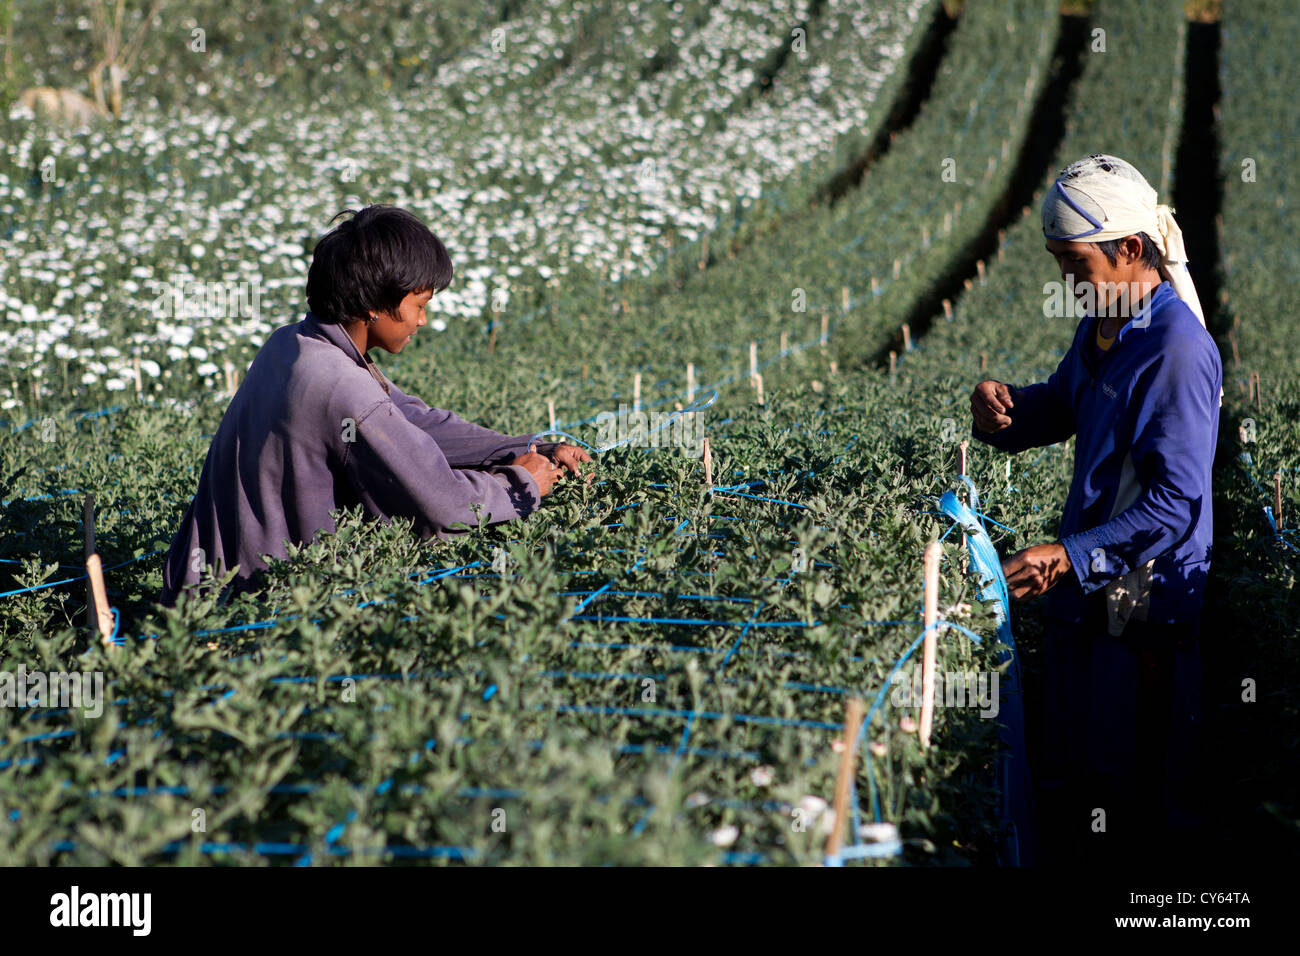 Farmers in Cebu,Philippines cultivate flower seedlings - Stock Image